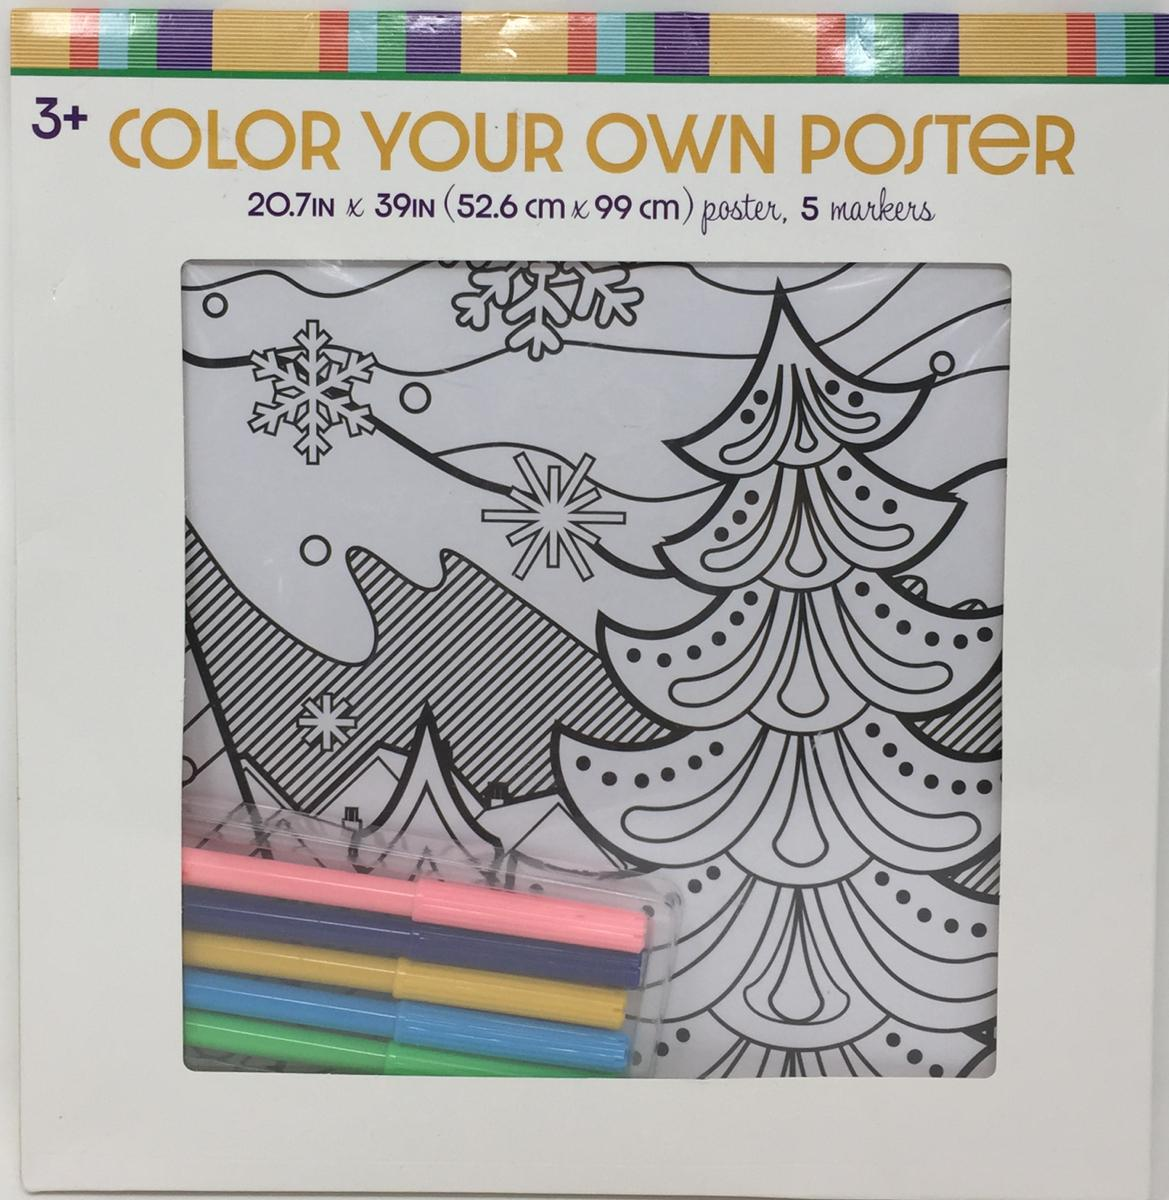 Color Your Own Poster Winter Village